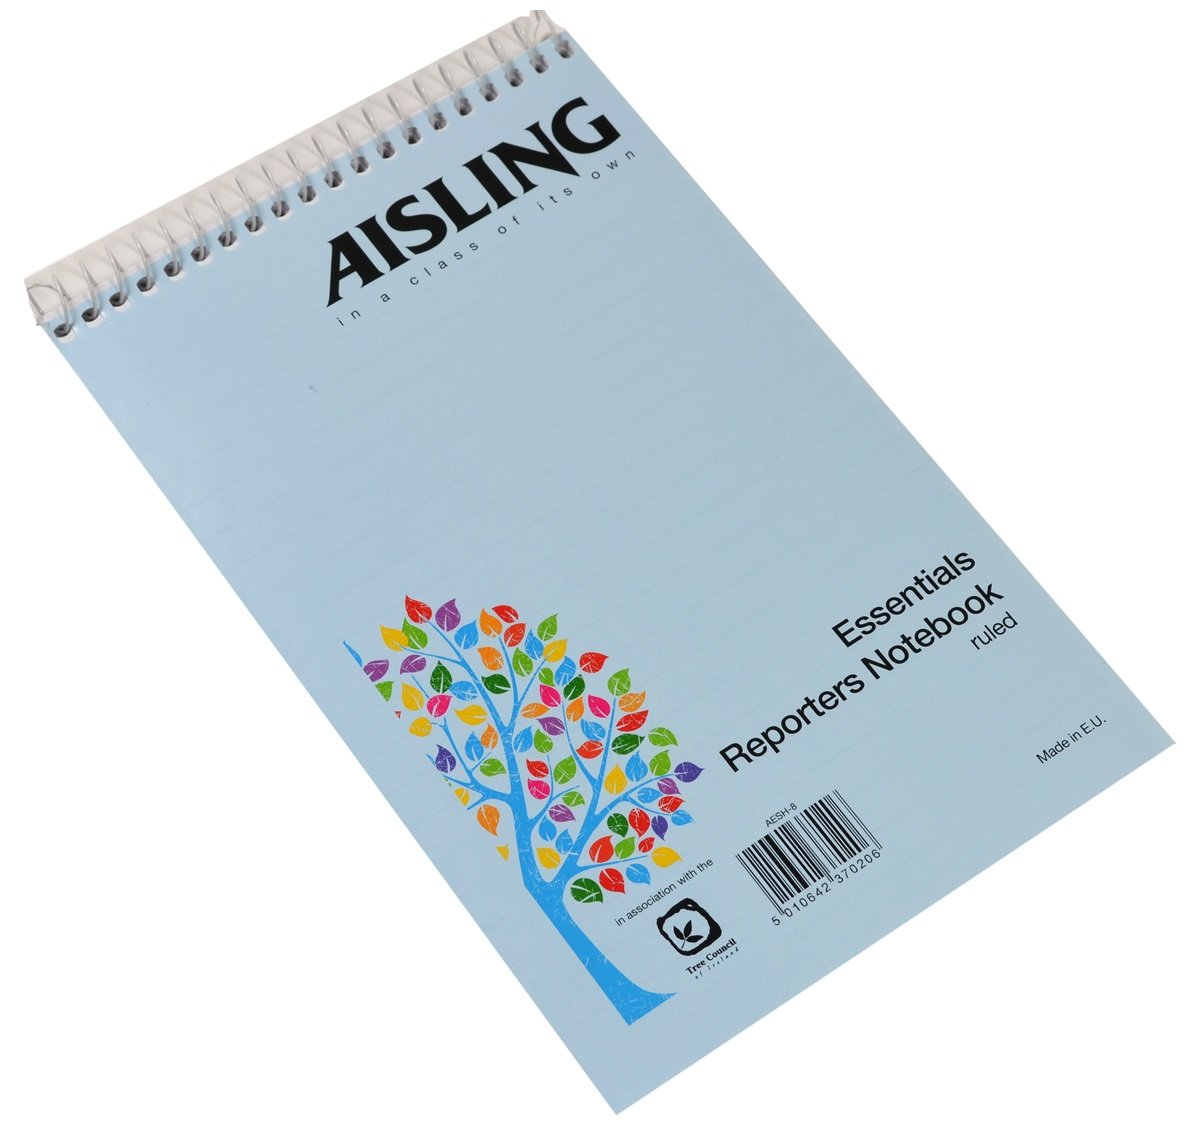 AISLING F8 200x127mm 50 Leaf Printed Reporter Notebook